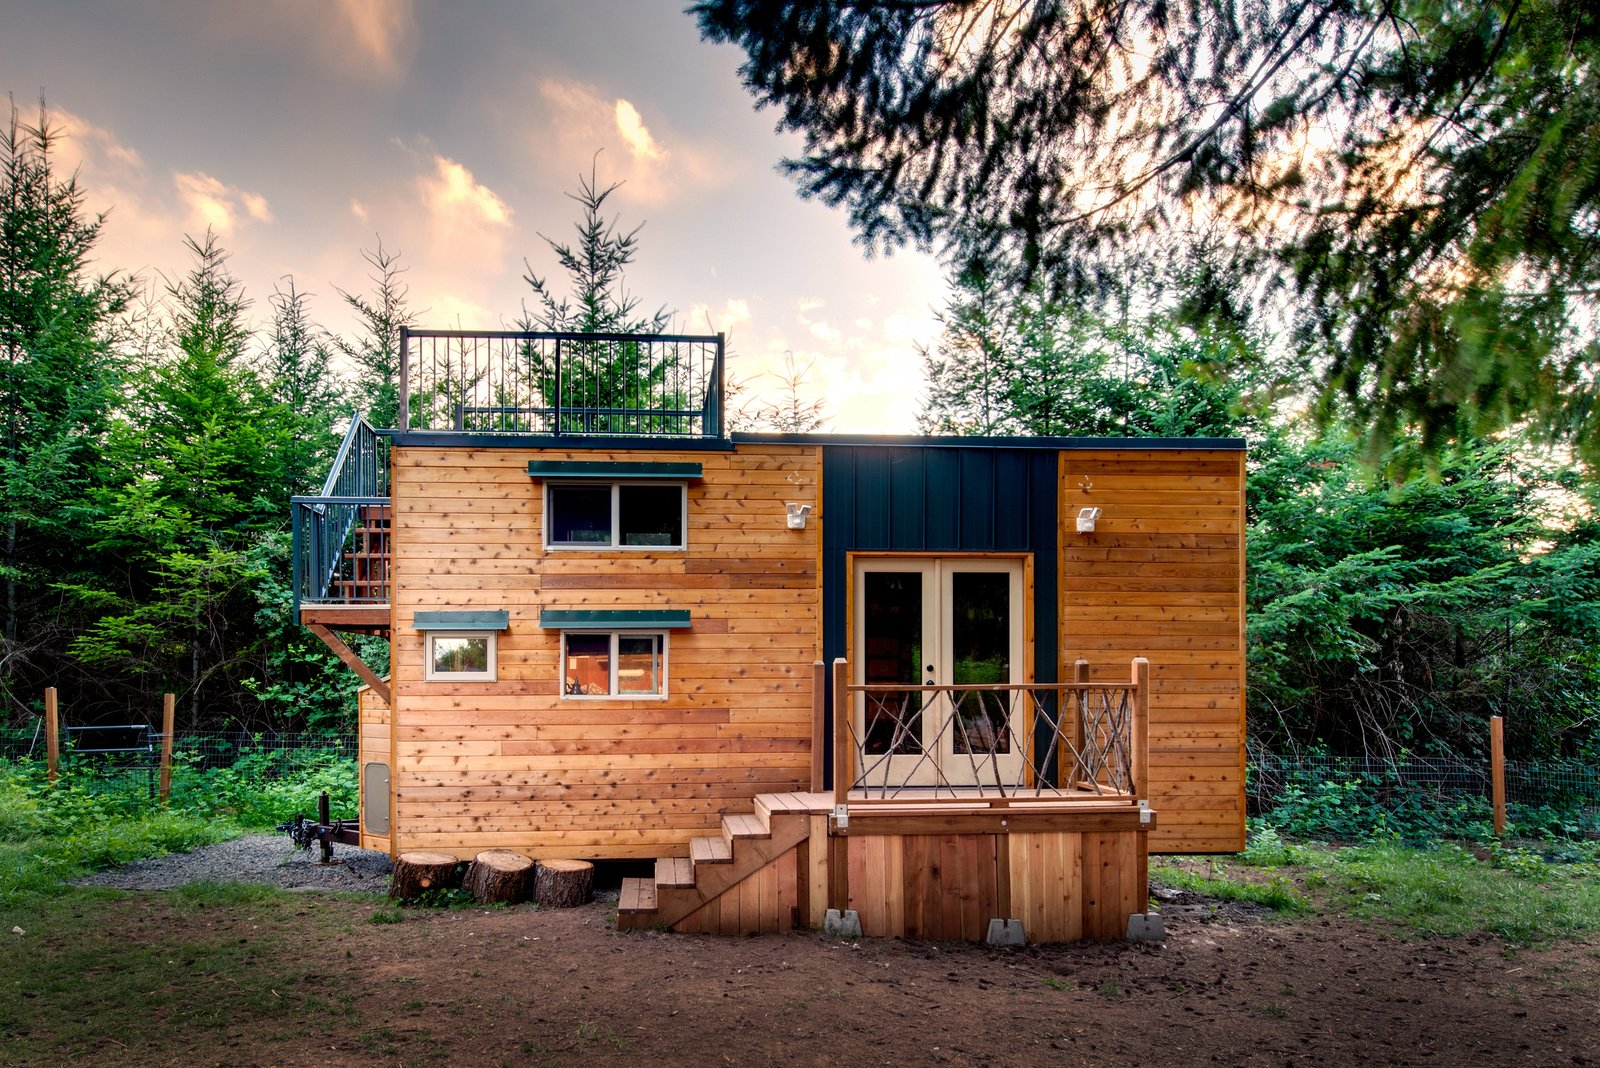 6 Tiny House Resources That Will Help You Downsize Your Life